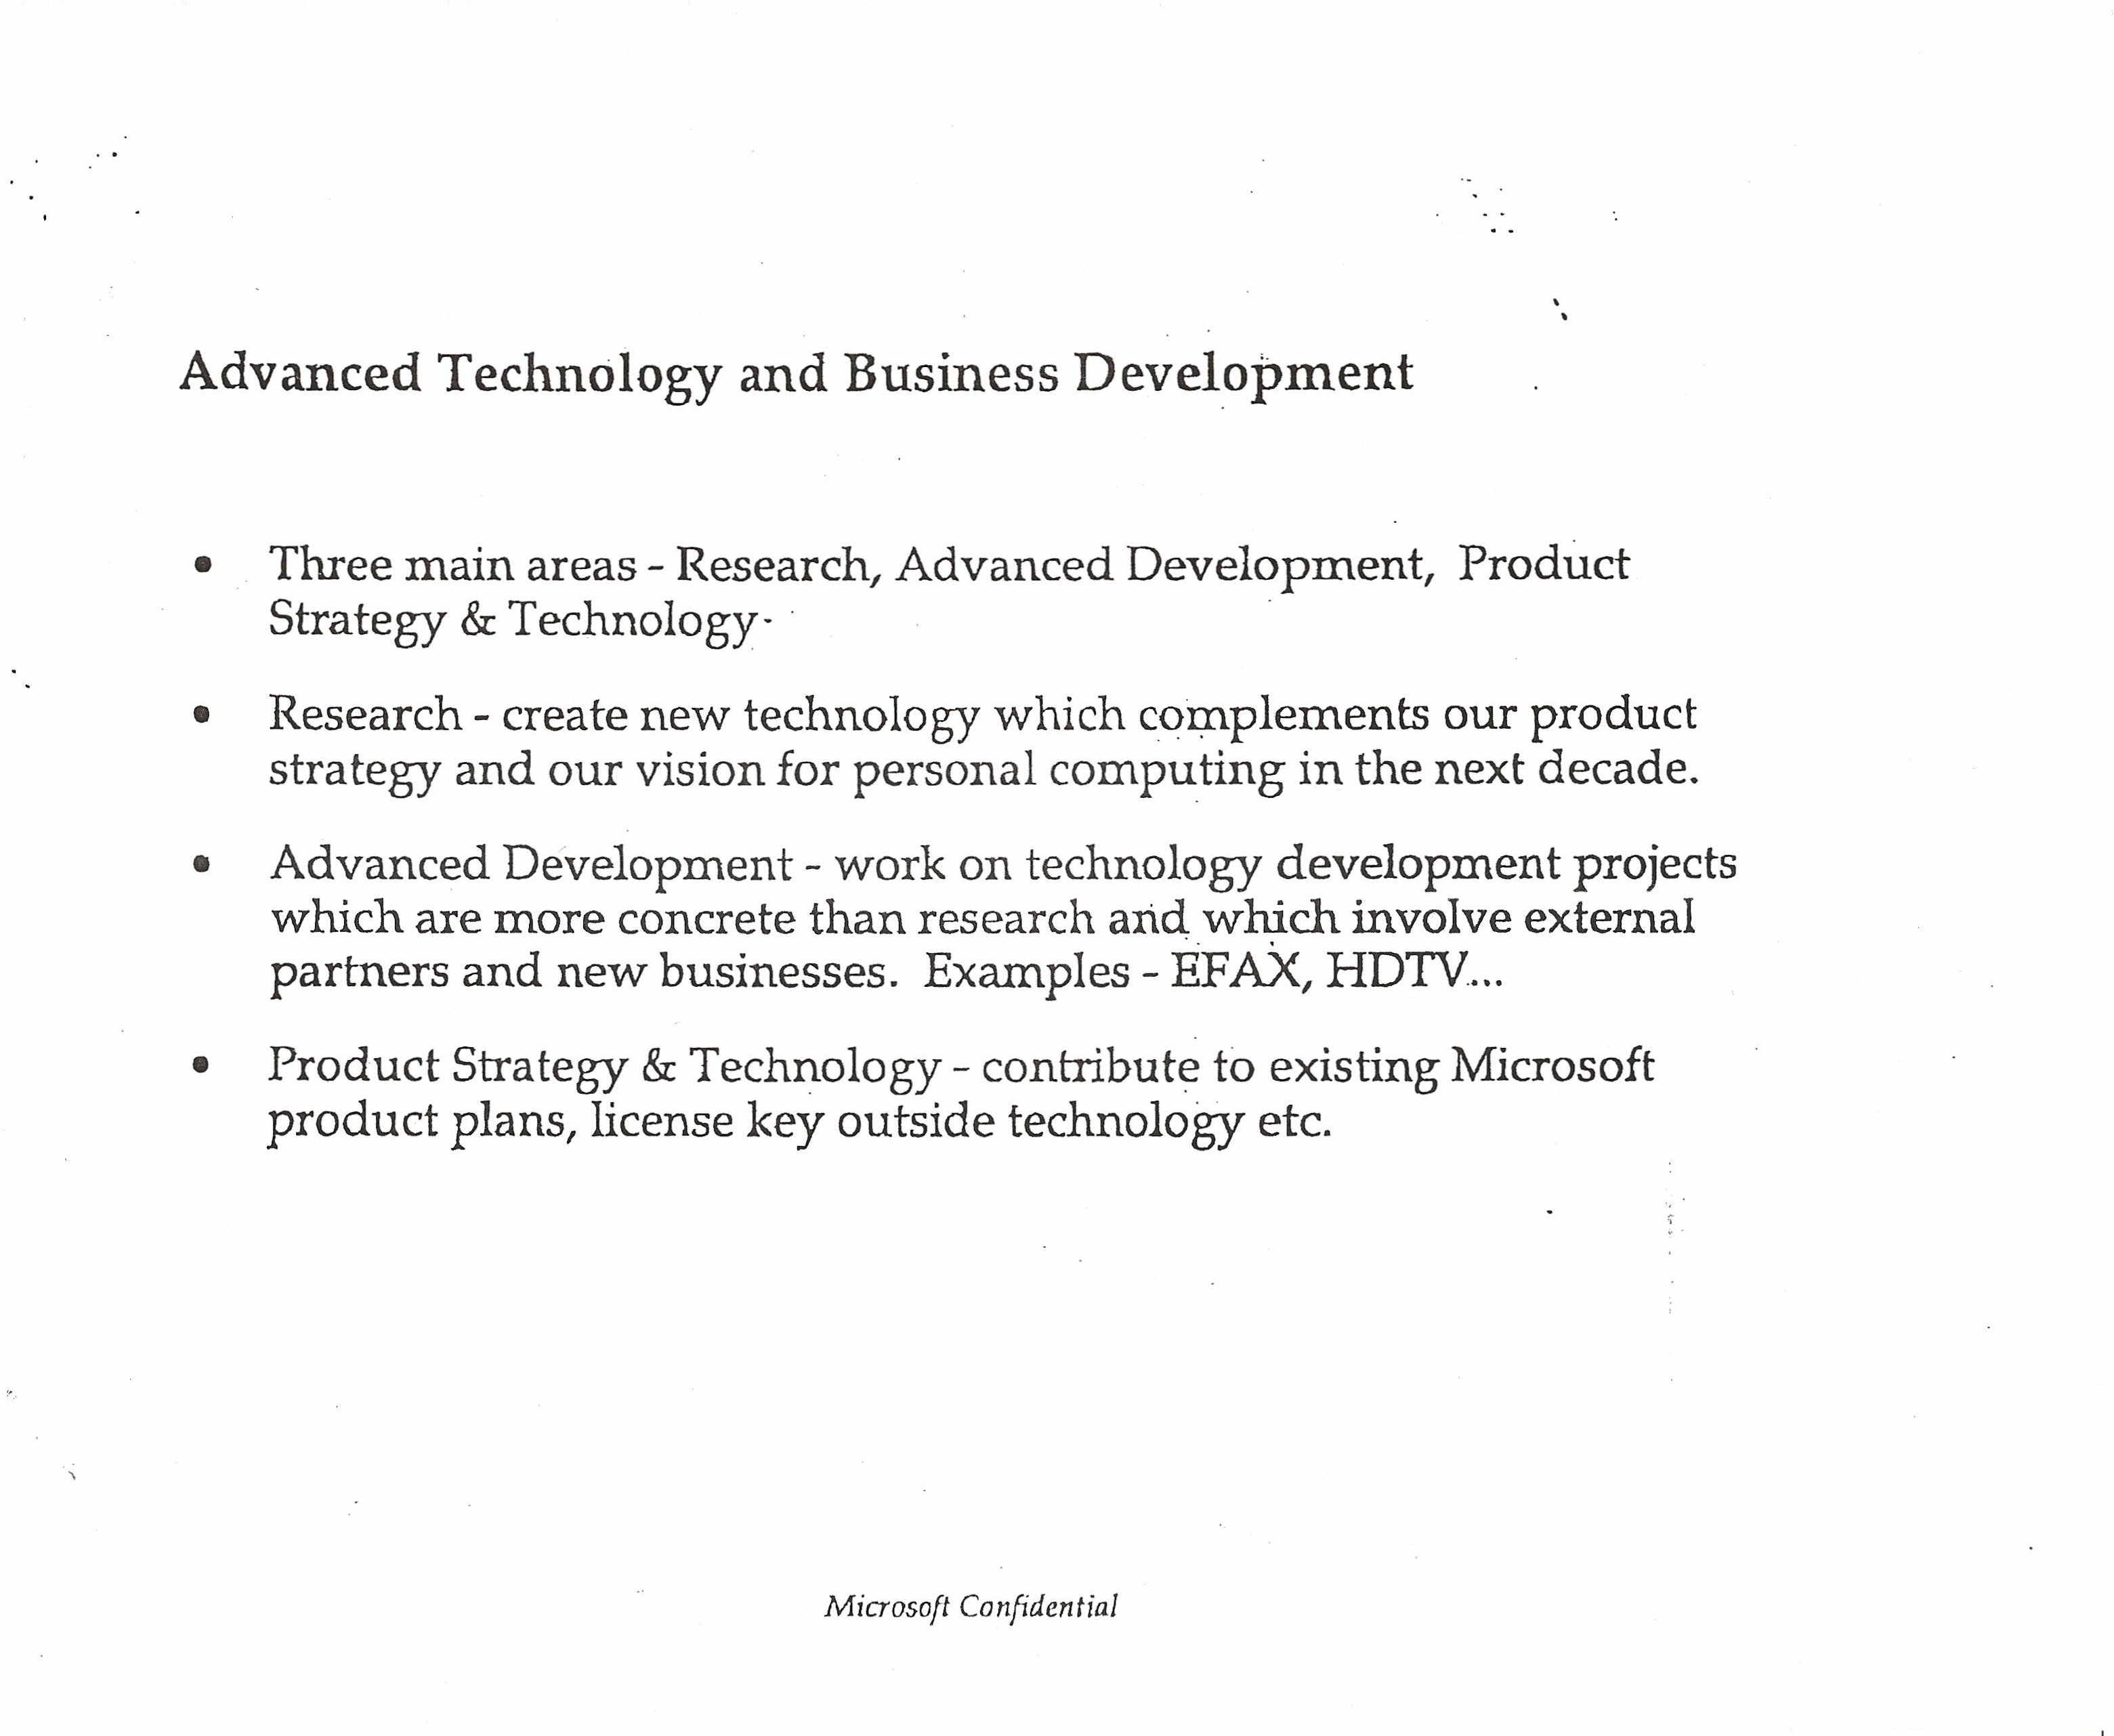 Research is different from advanced technology